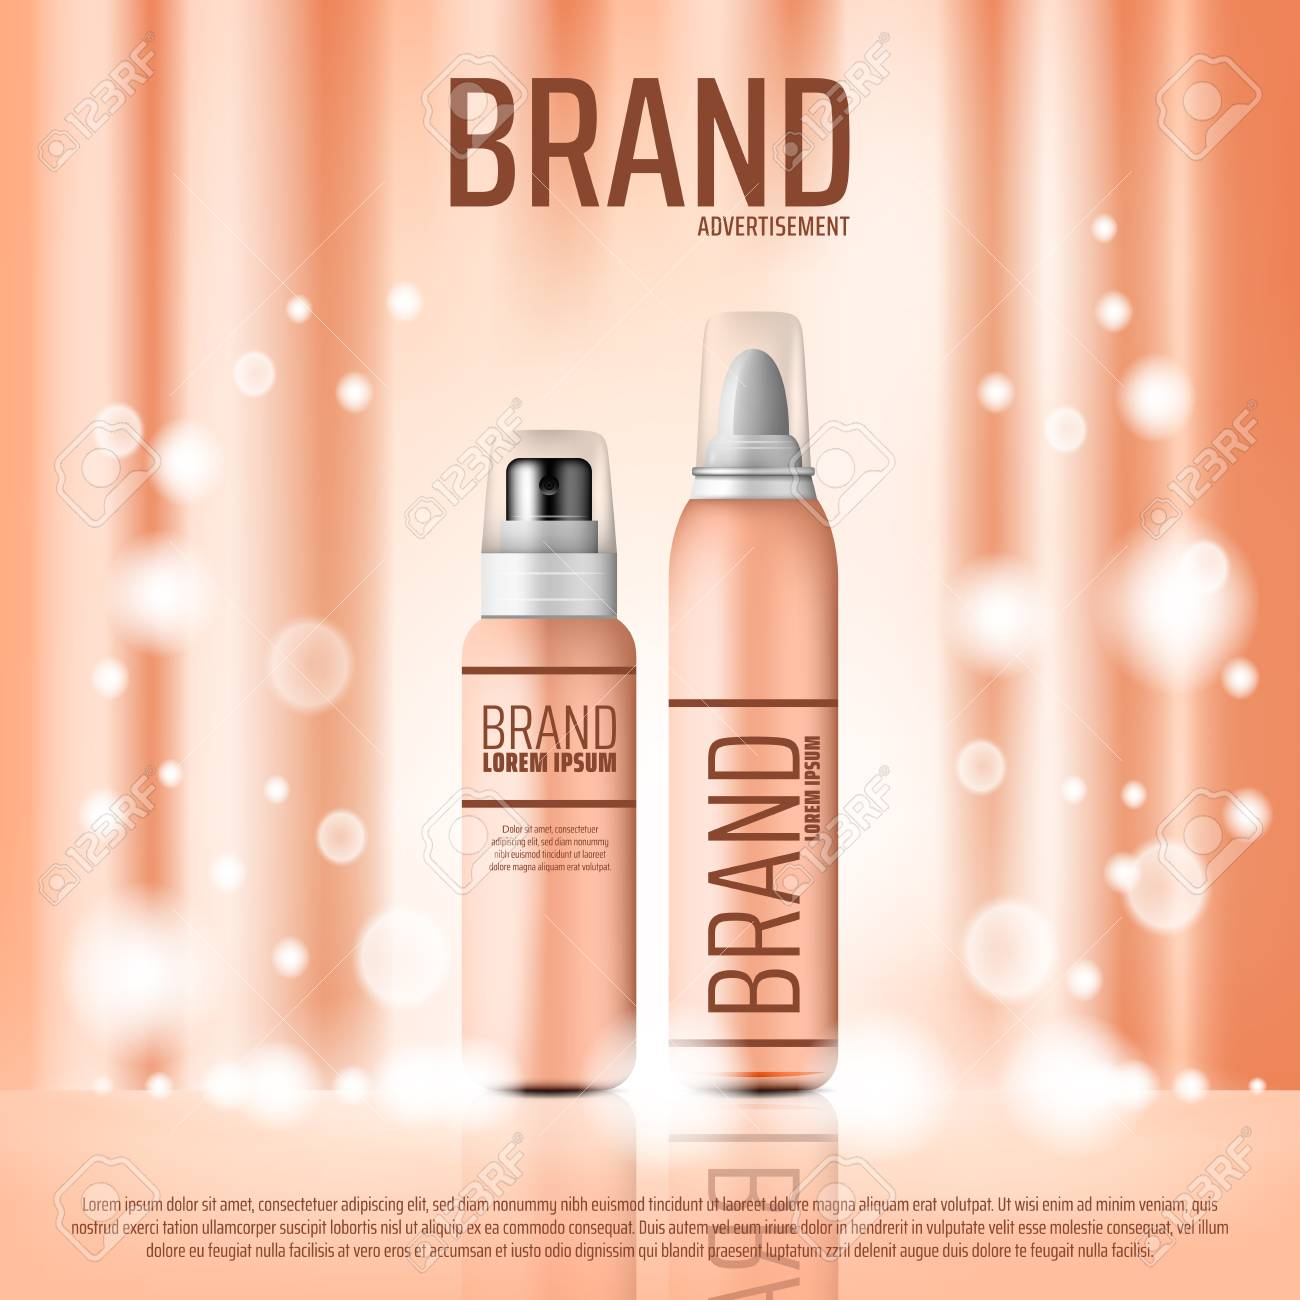 Cosmetics Advertising Banner Of Skin Care Or Hairstyling Product Royalty Free Cliparts Vectors And Stock Illustration Image 110122343